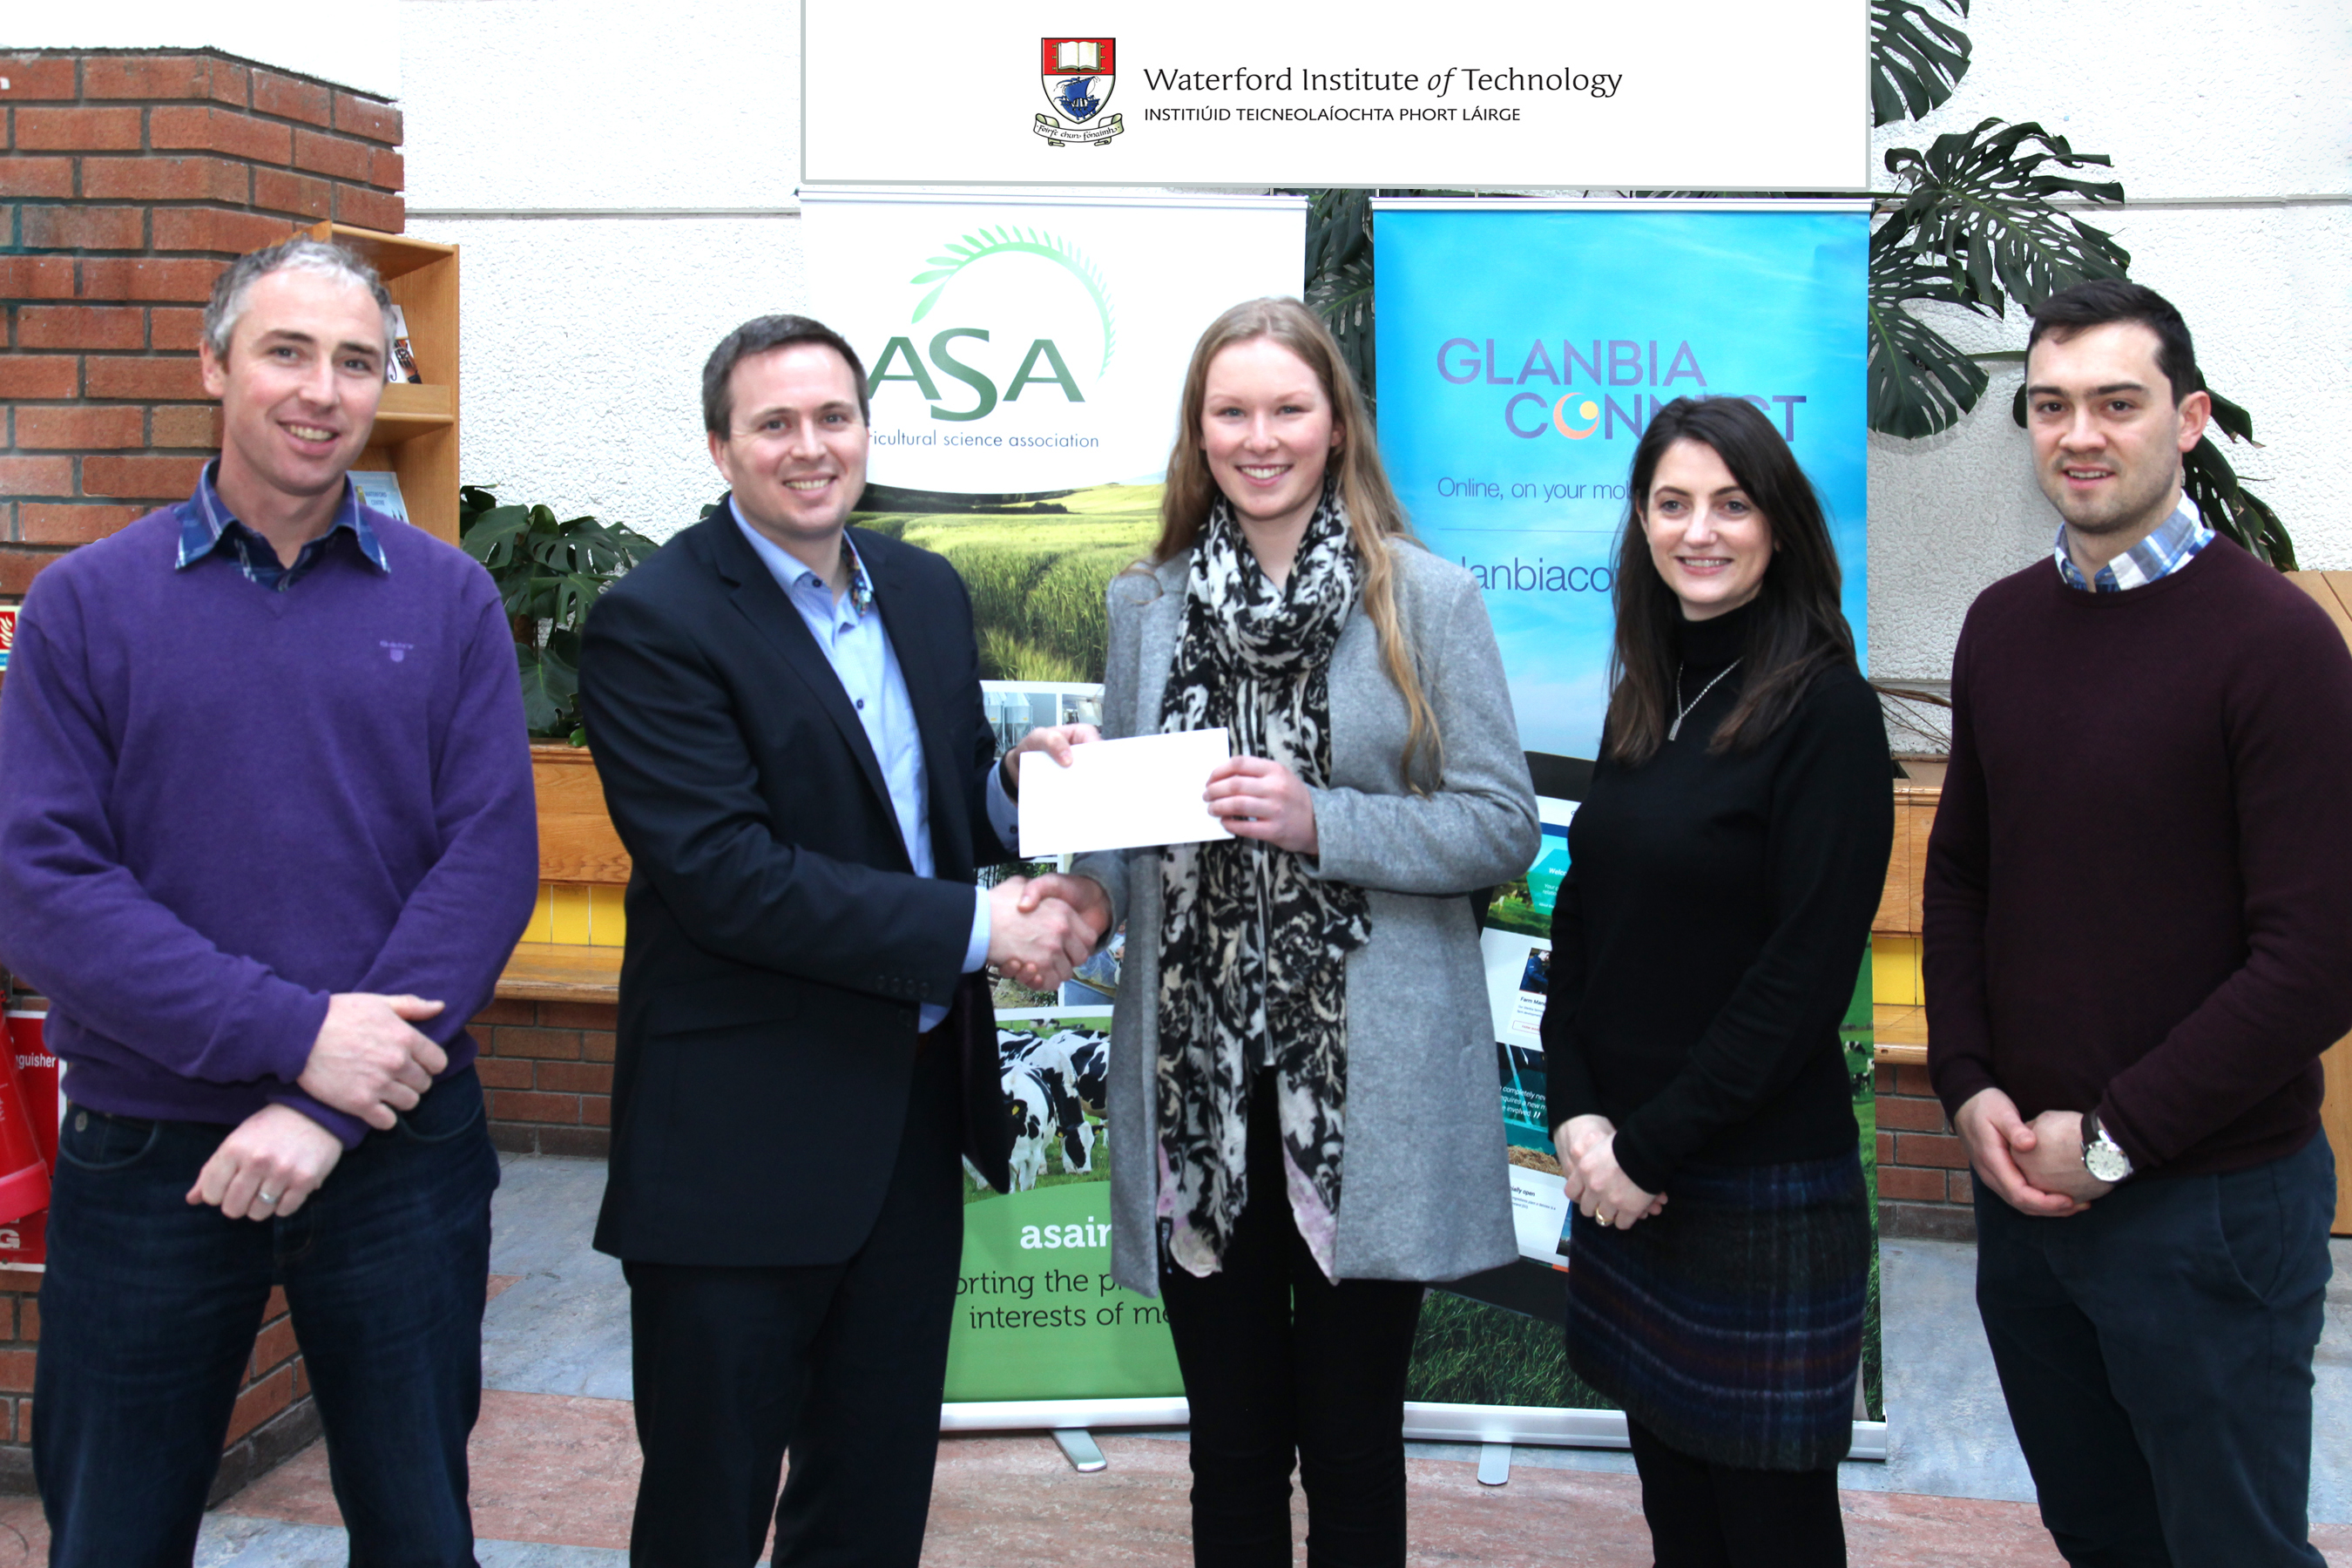 The winner of the ASA/WIT Travel bursary in association with Irish Farmers Journal and Glanbia was second year BSc in Agriculture student Ailish Osborne from Ballinamona, Kilkea, Castledermot, Co Kildare.